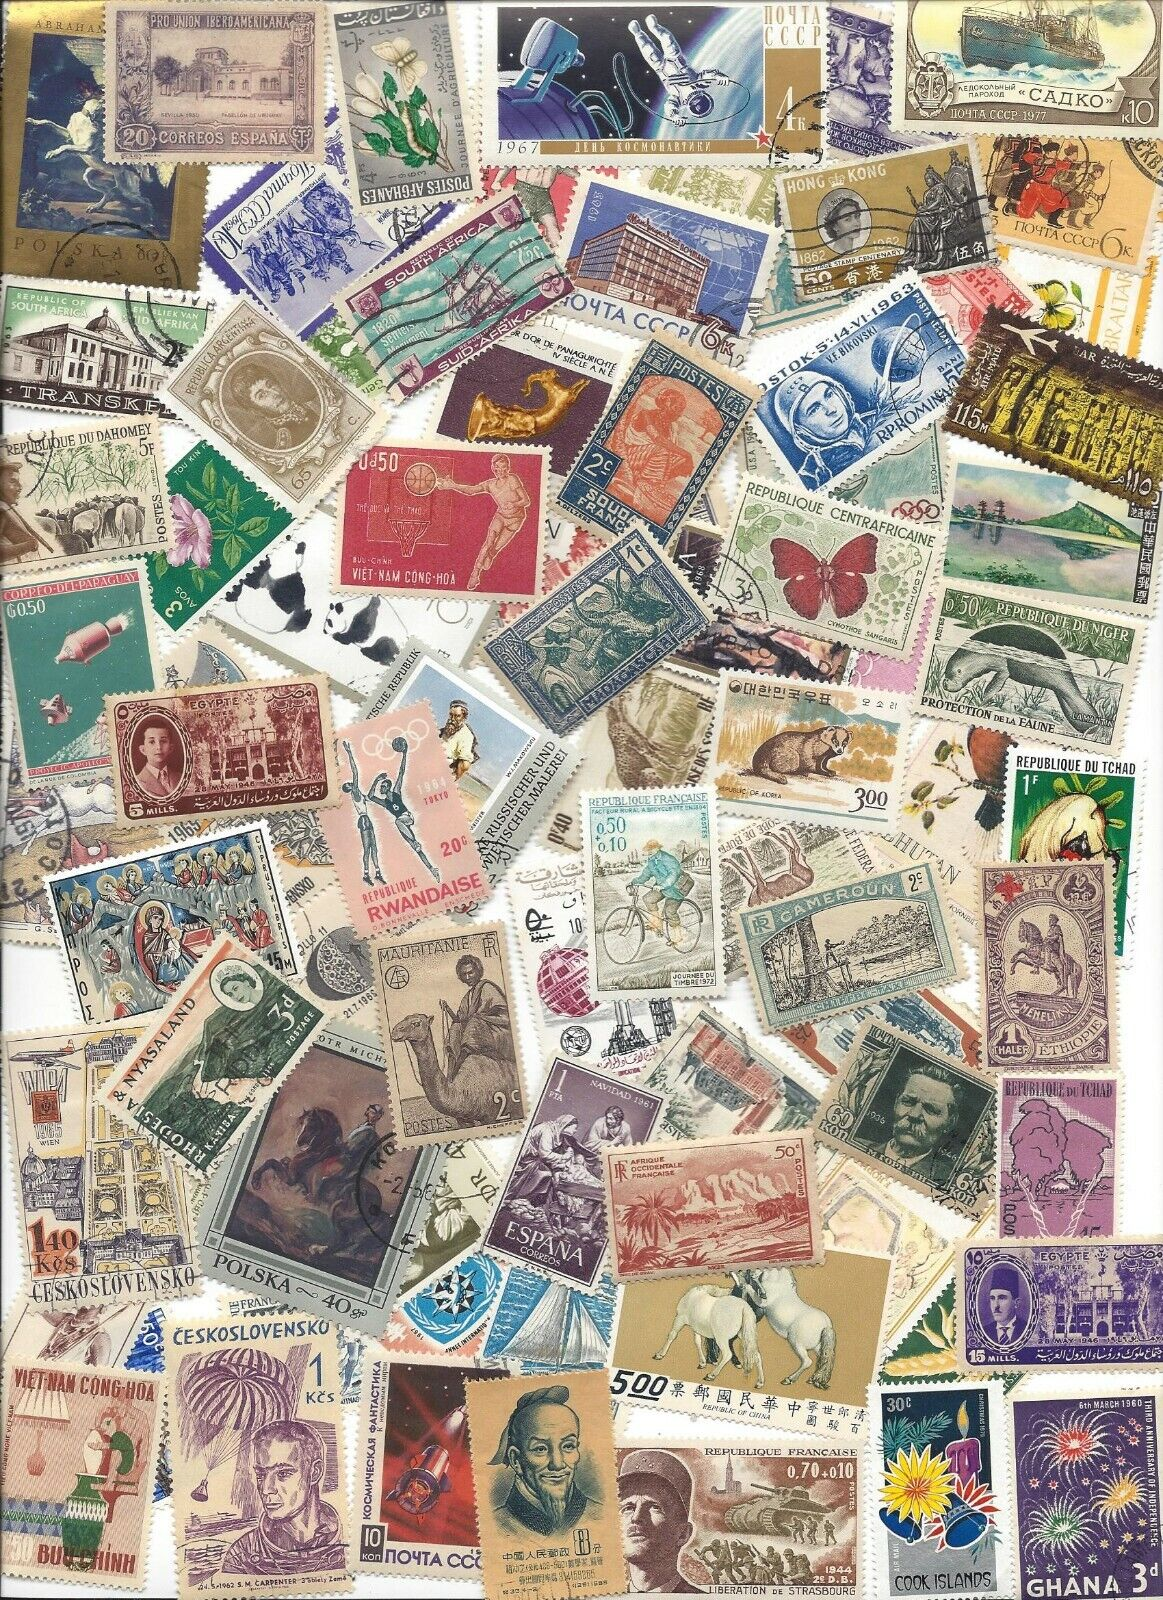 75 Different Cancelled Worldwide Stamps 2/13A - $3.00